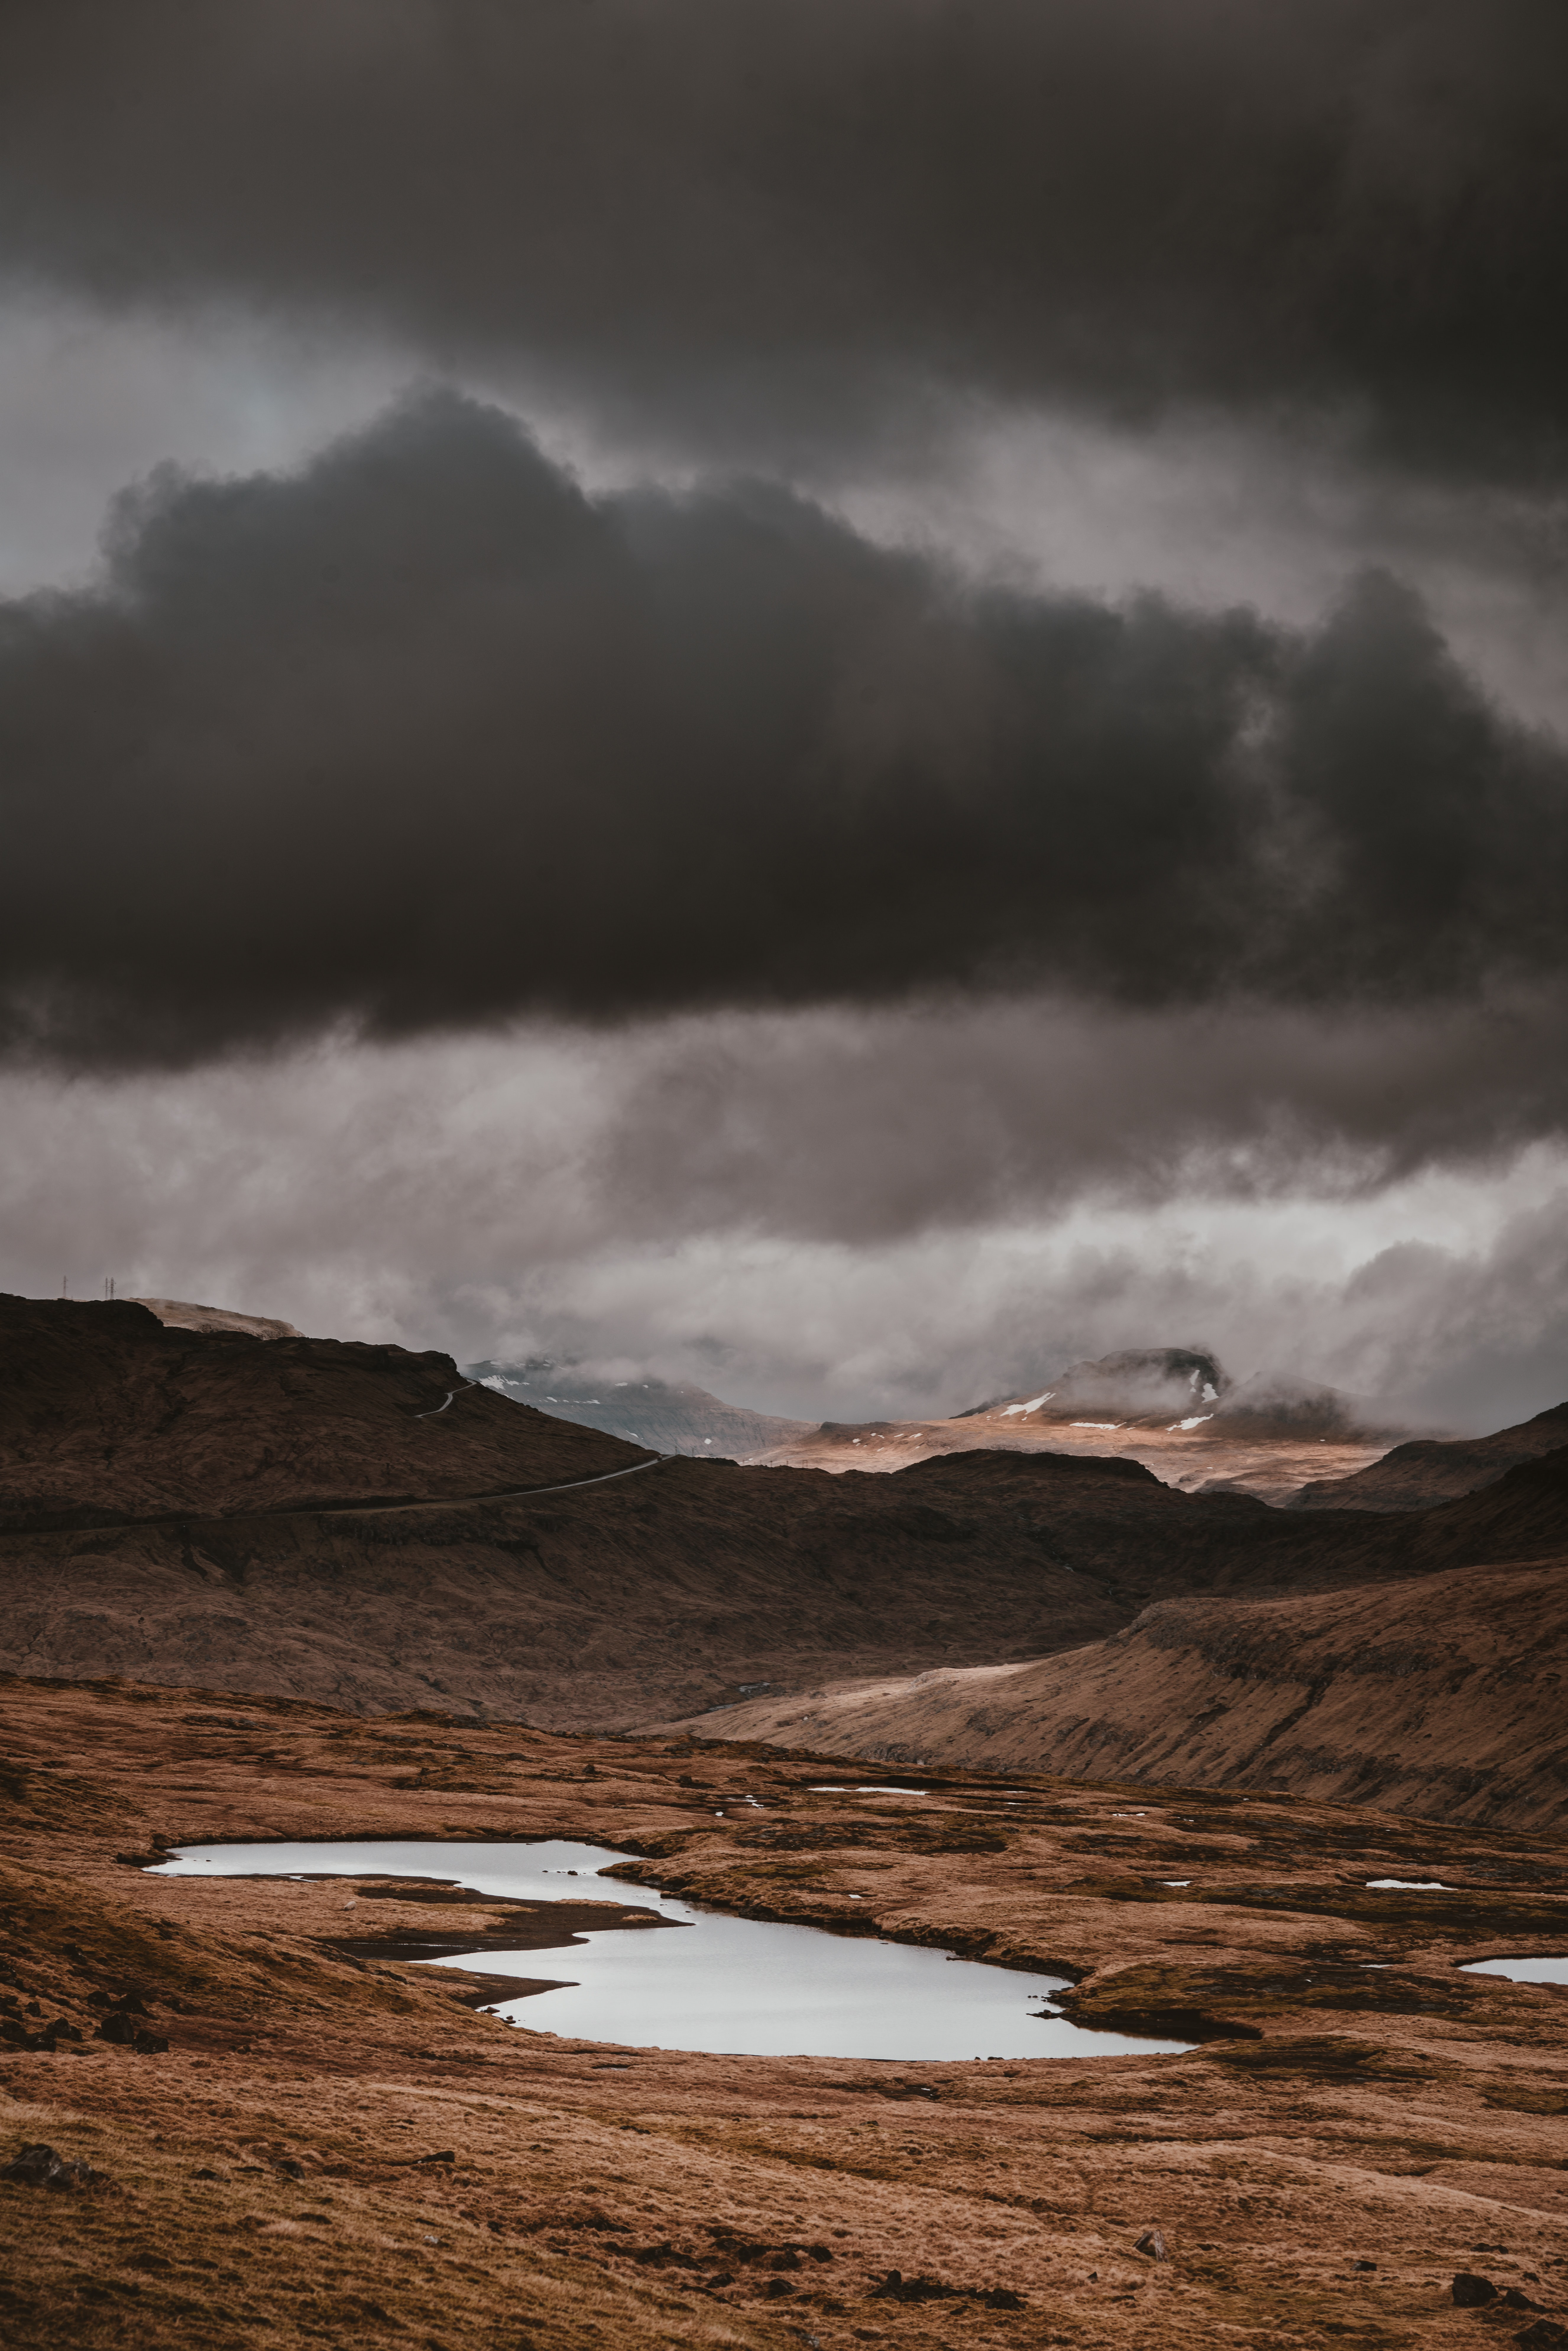 gray clouds over vast dry land